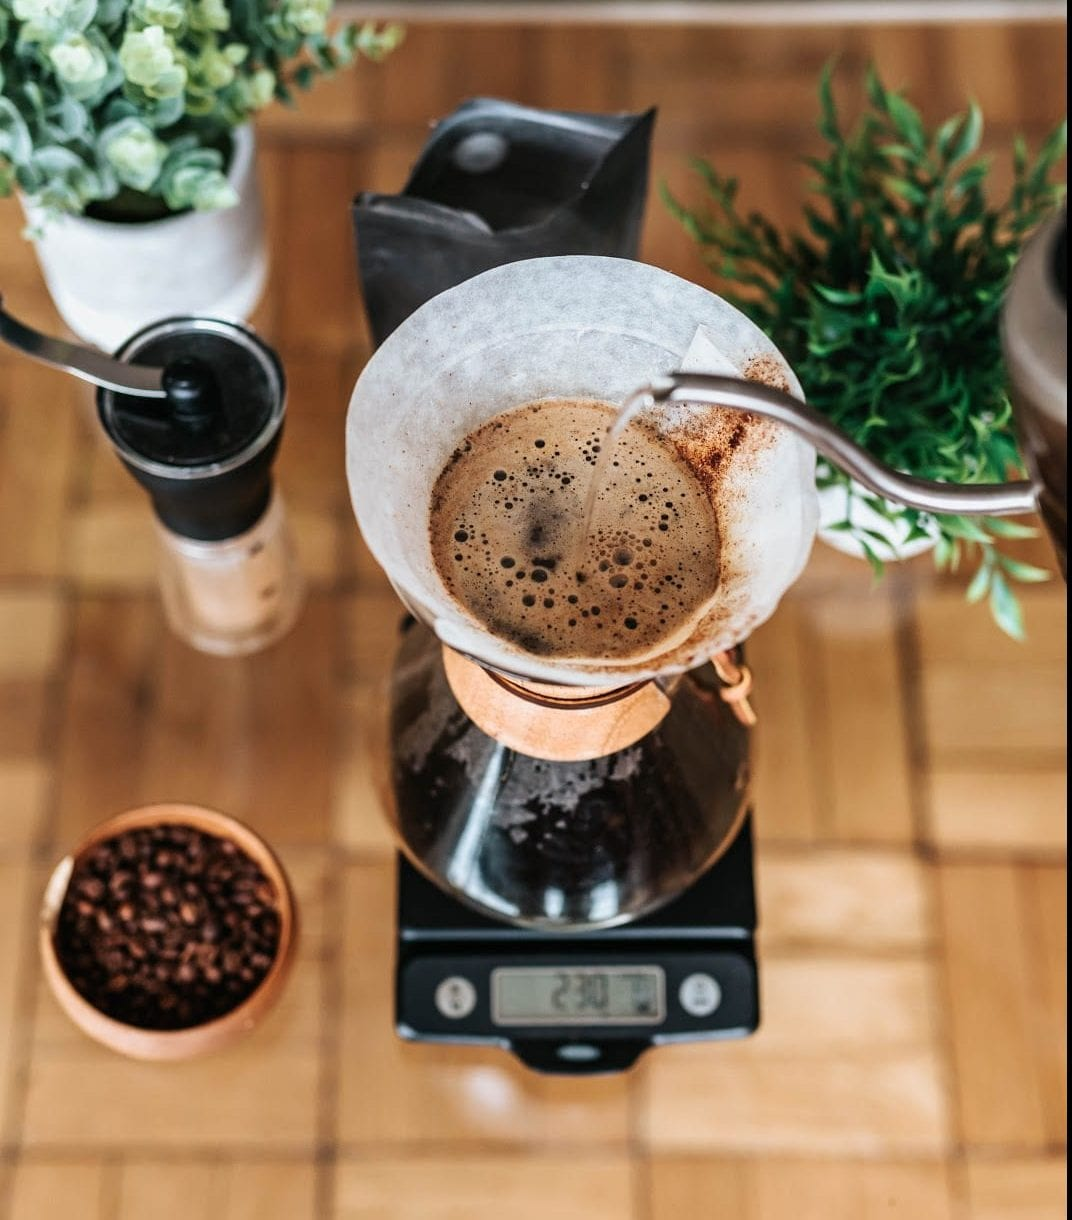 Drip vs Immersion: The Battle of The Coffee Brew Methods